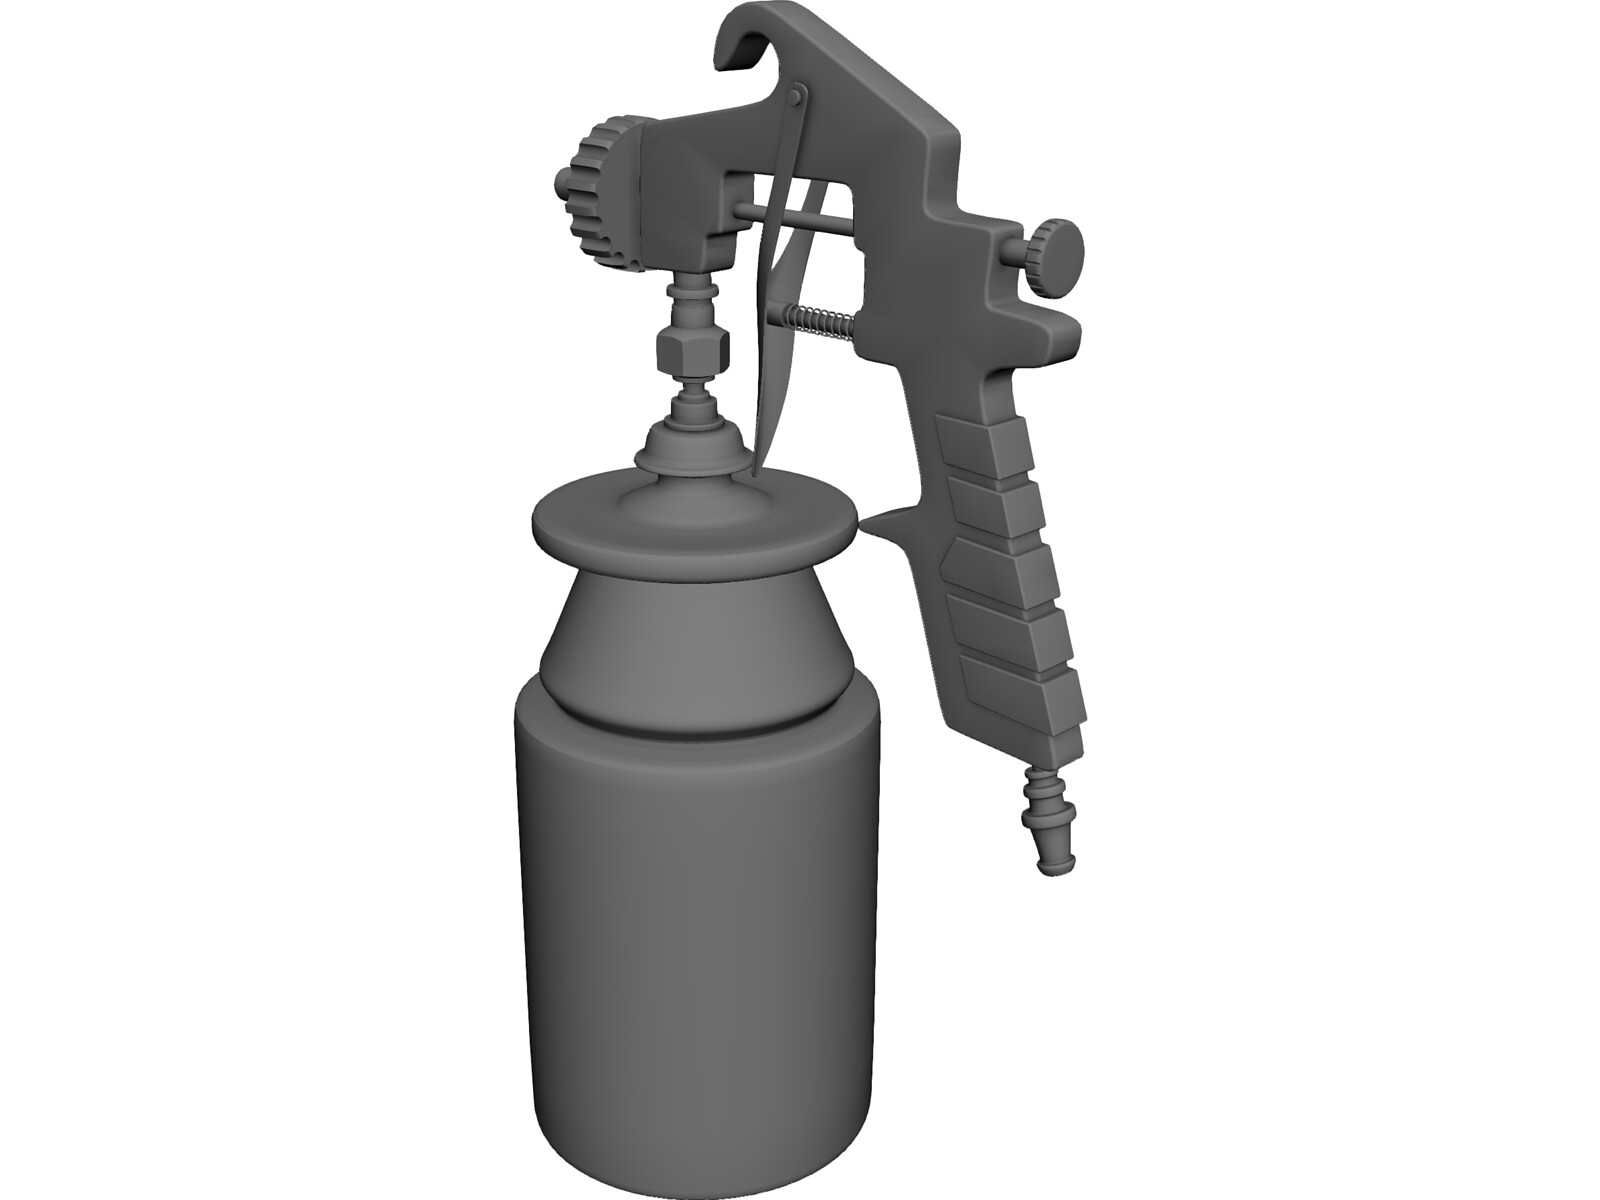 Spray Gun 3D Model